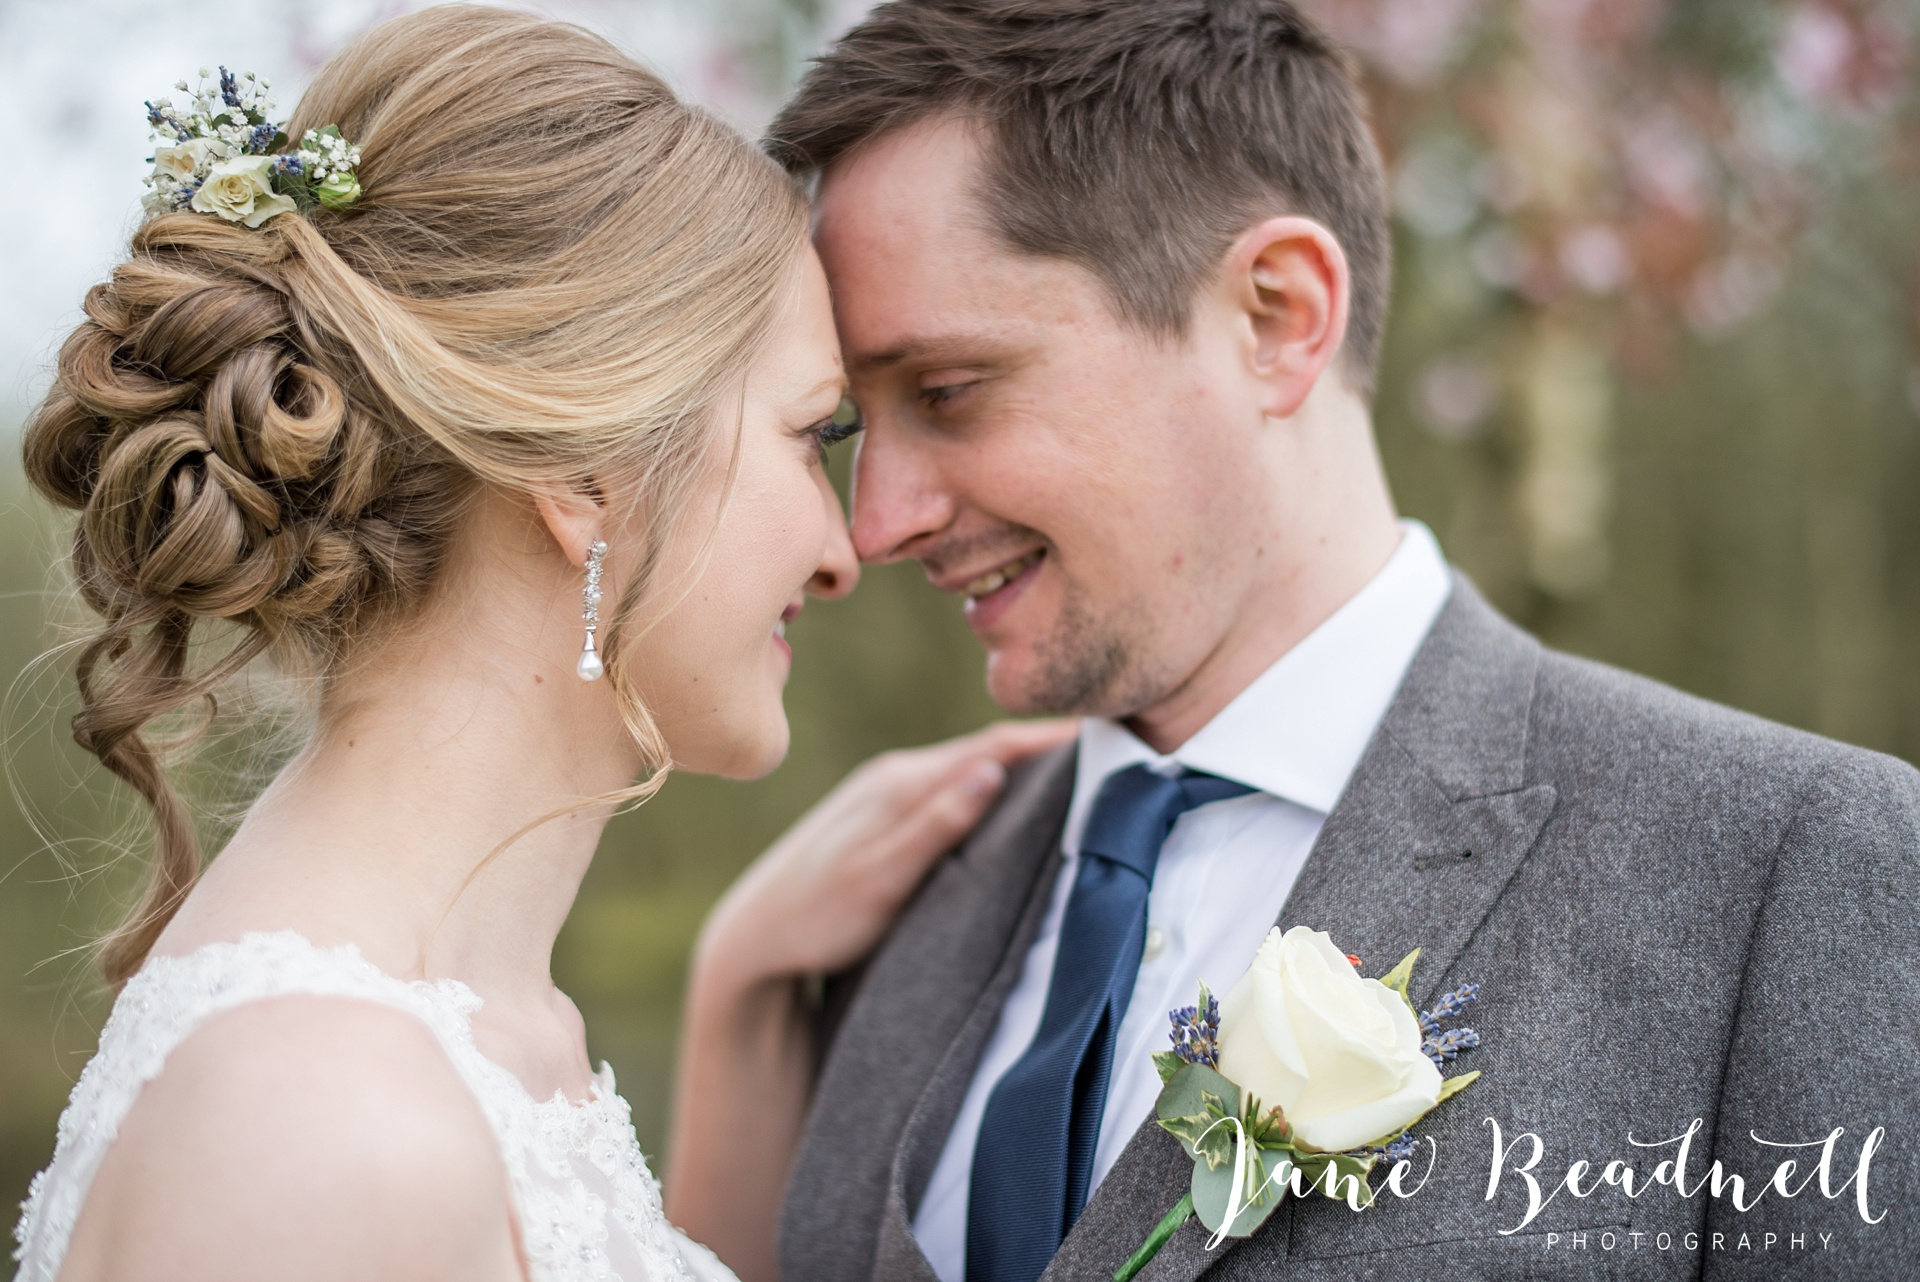 Otley Chevin Lodge wedding photography by Jane Beadnell Photography Leeds_0090